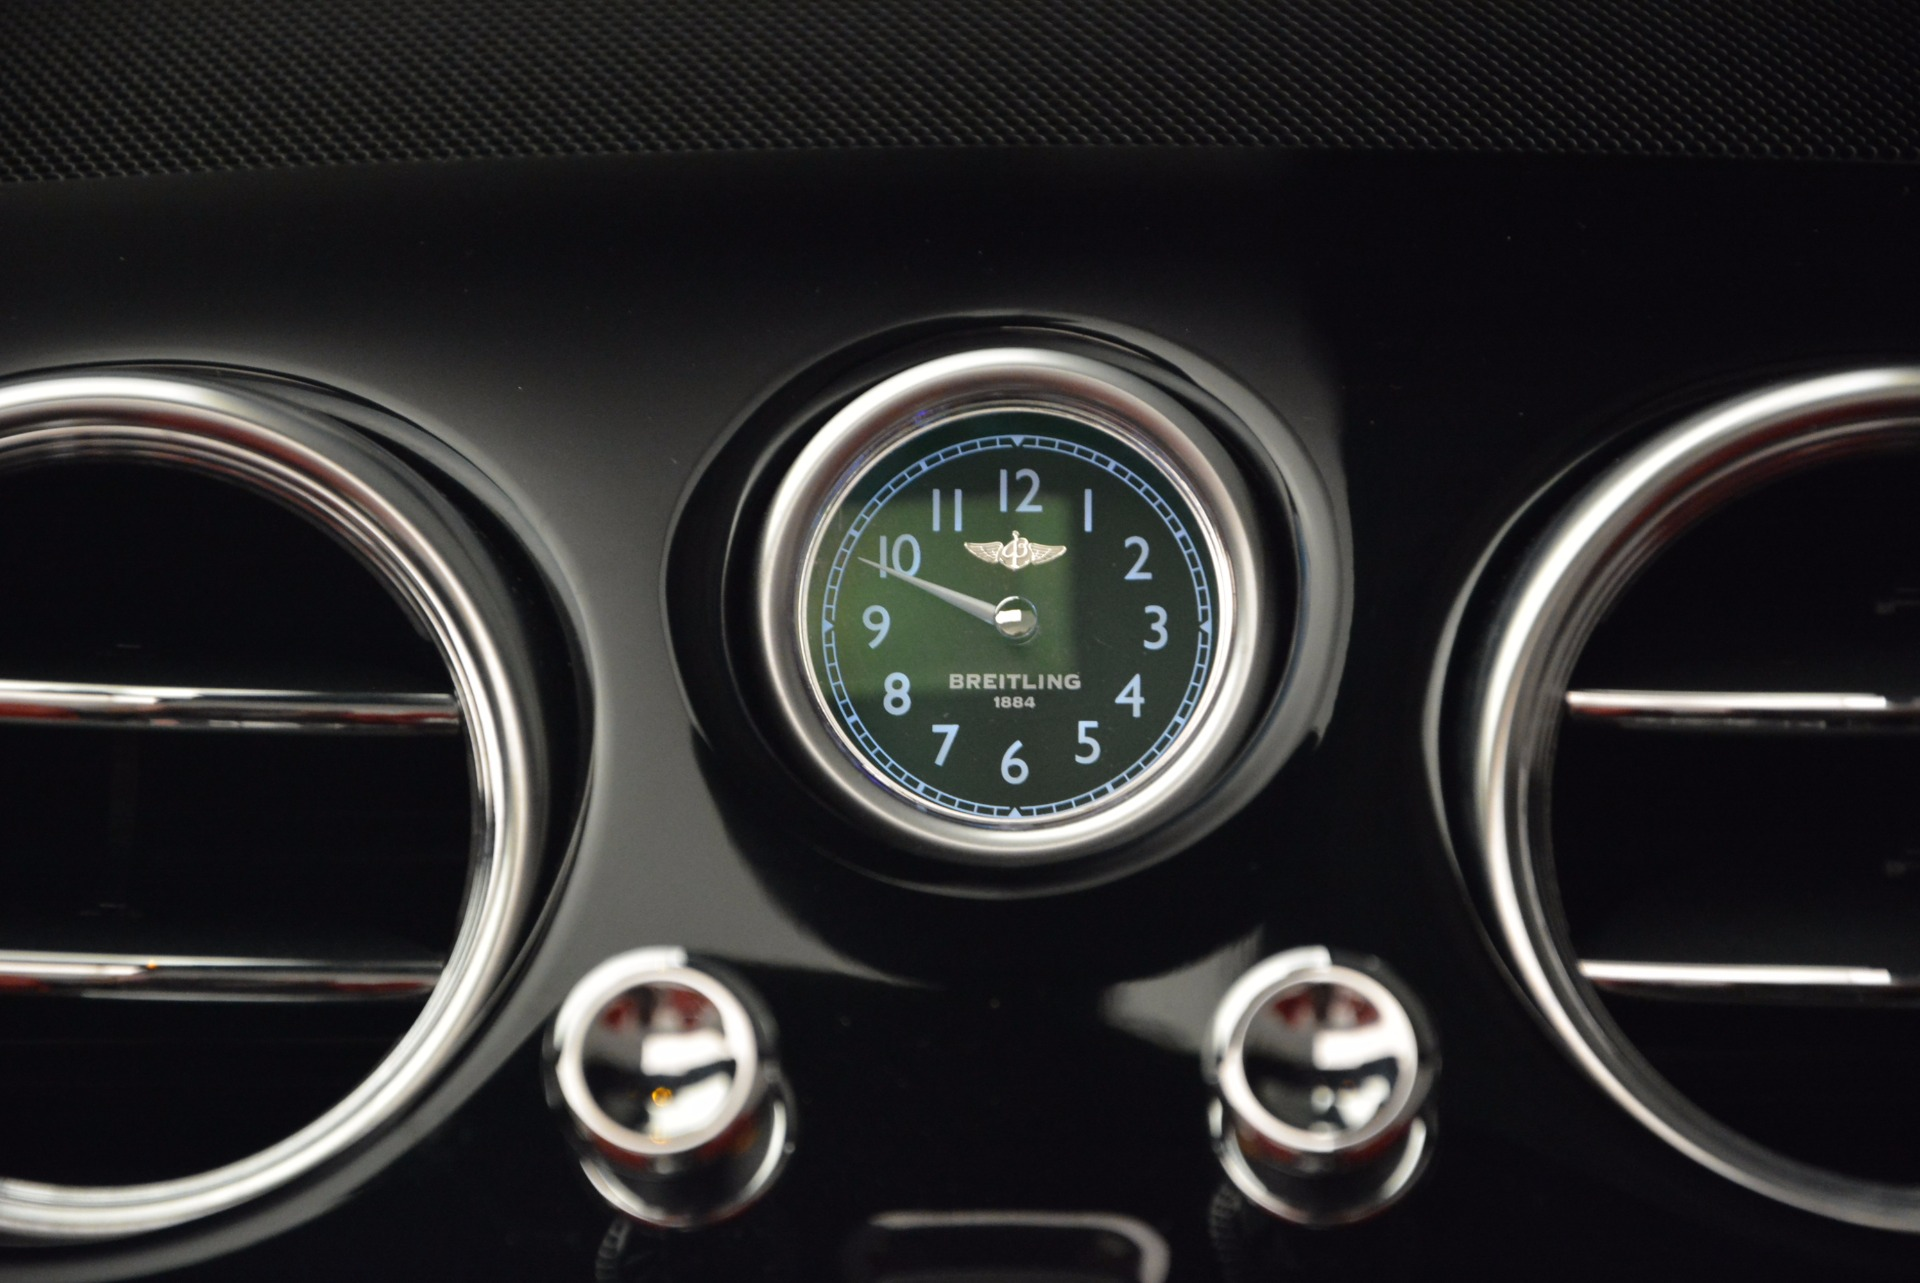 Used 2012 Bentley Continental GT W12 Convertible For Sale In Westport, CT 1104_p47